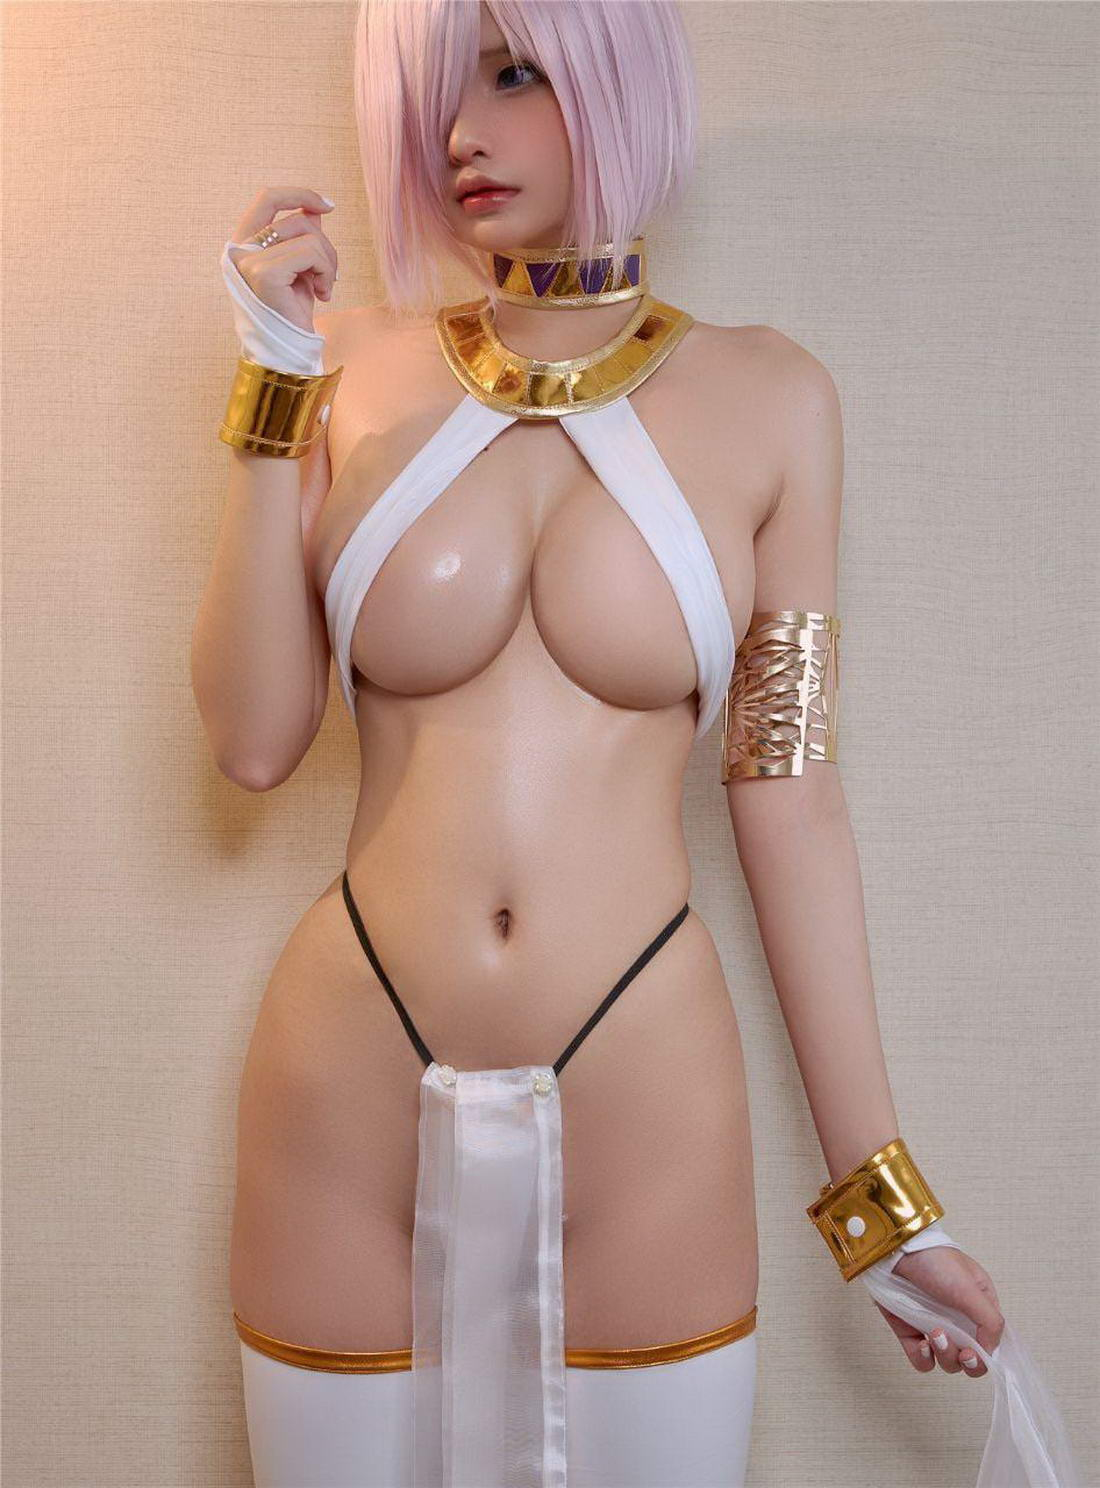 Hot Cosplay Girls Will Outshine Your Mind (46 Photos)